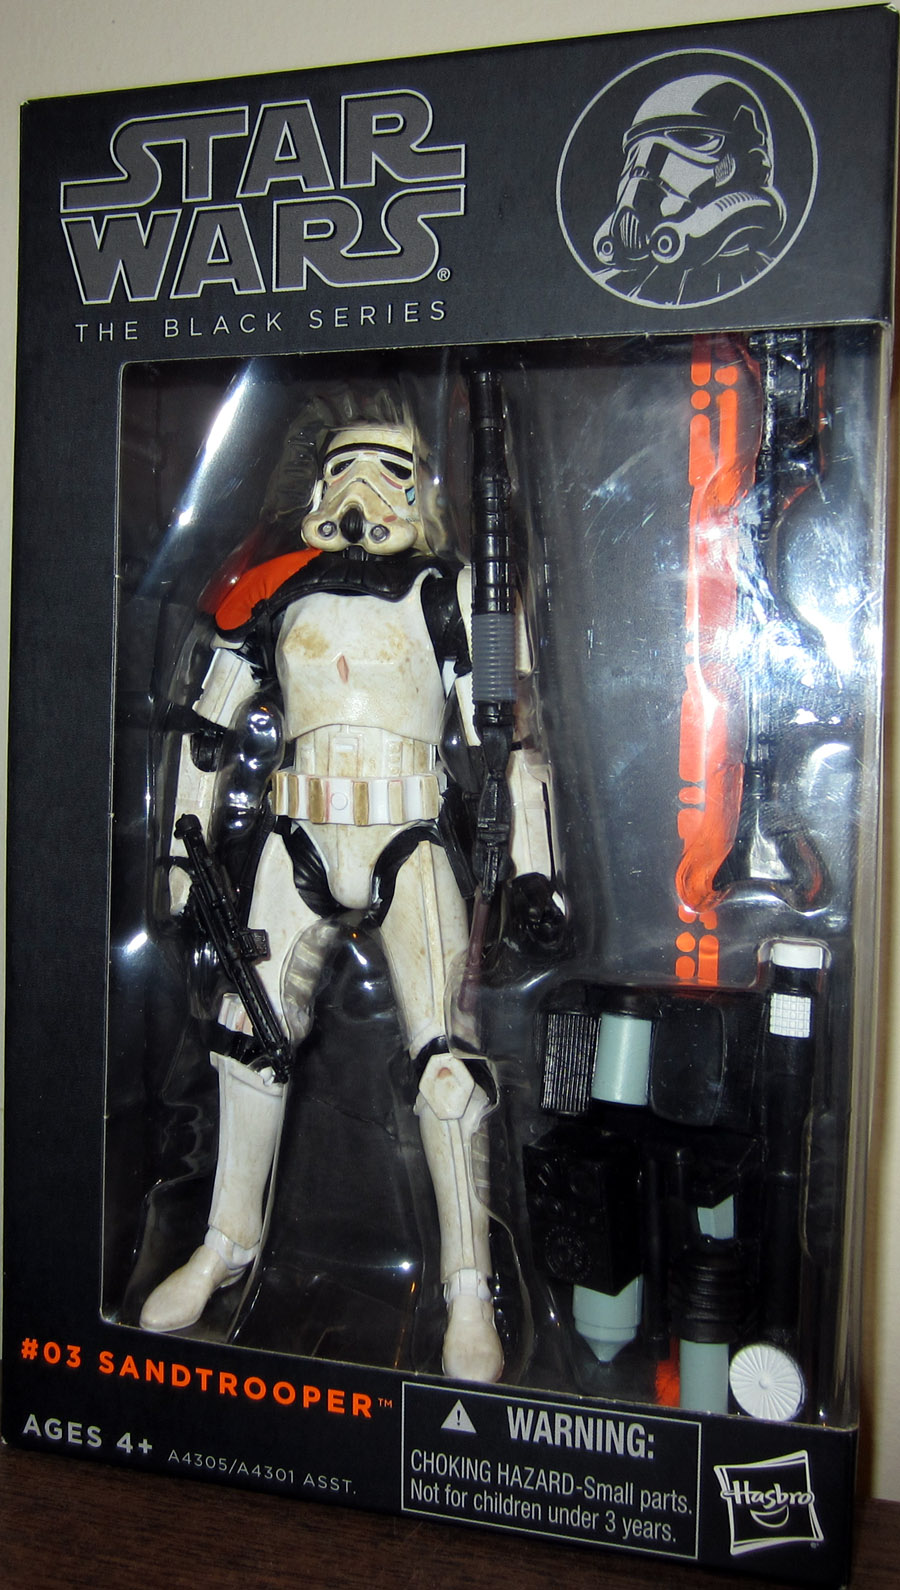 Sandtrooper (The Black Series, #03)